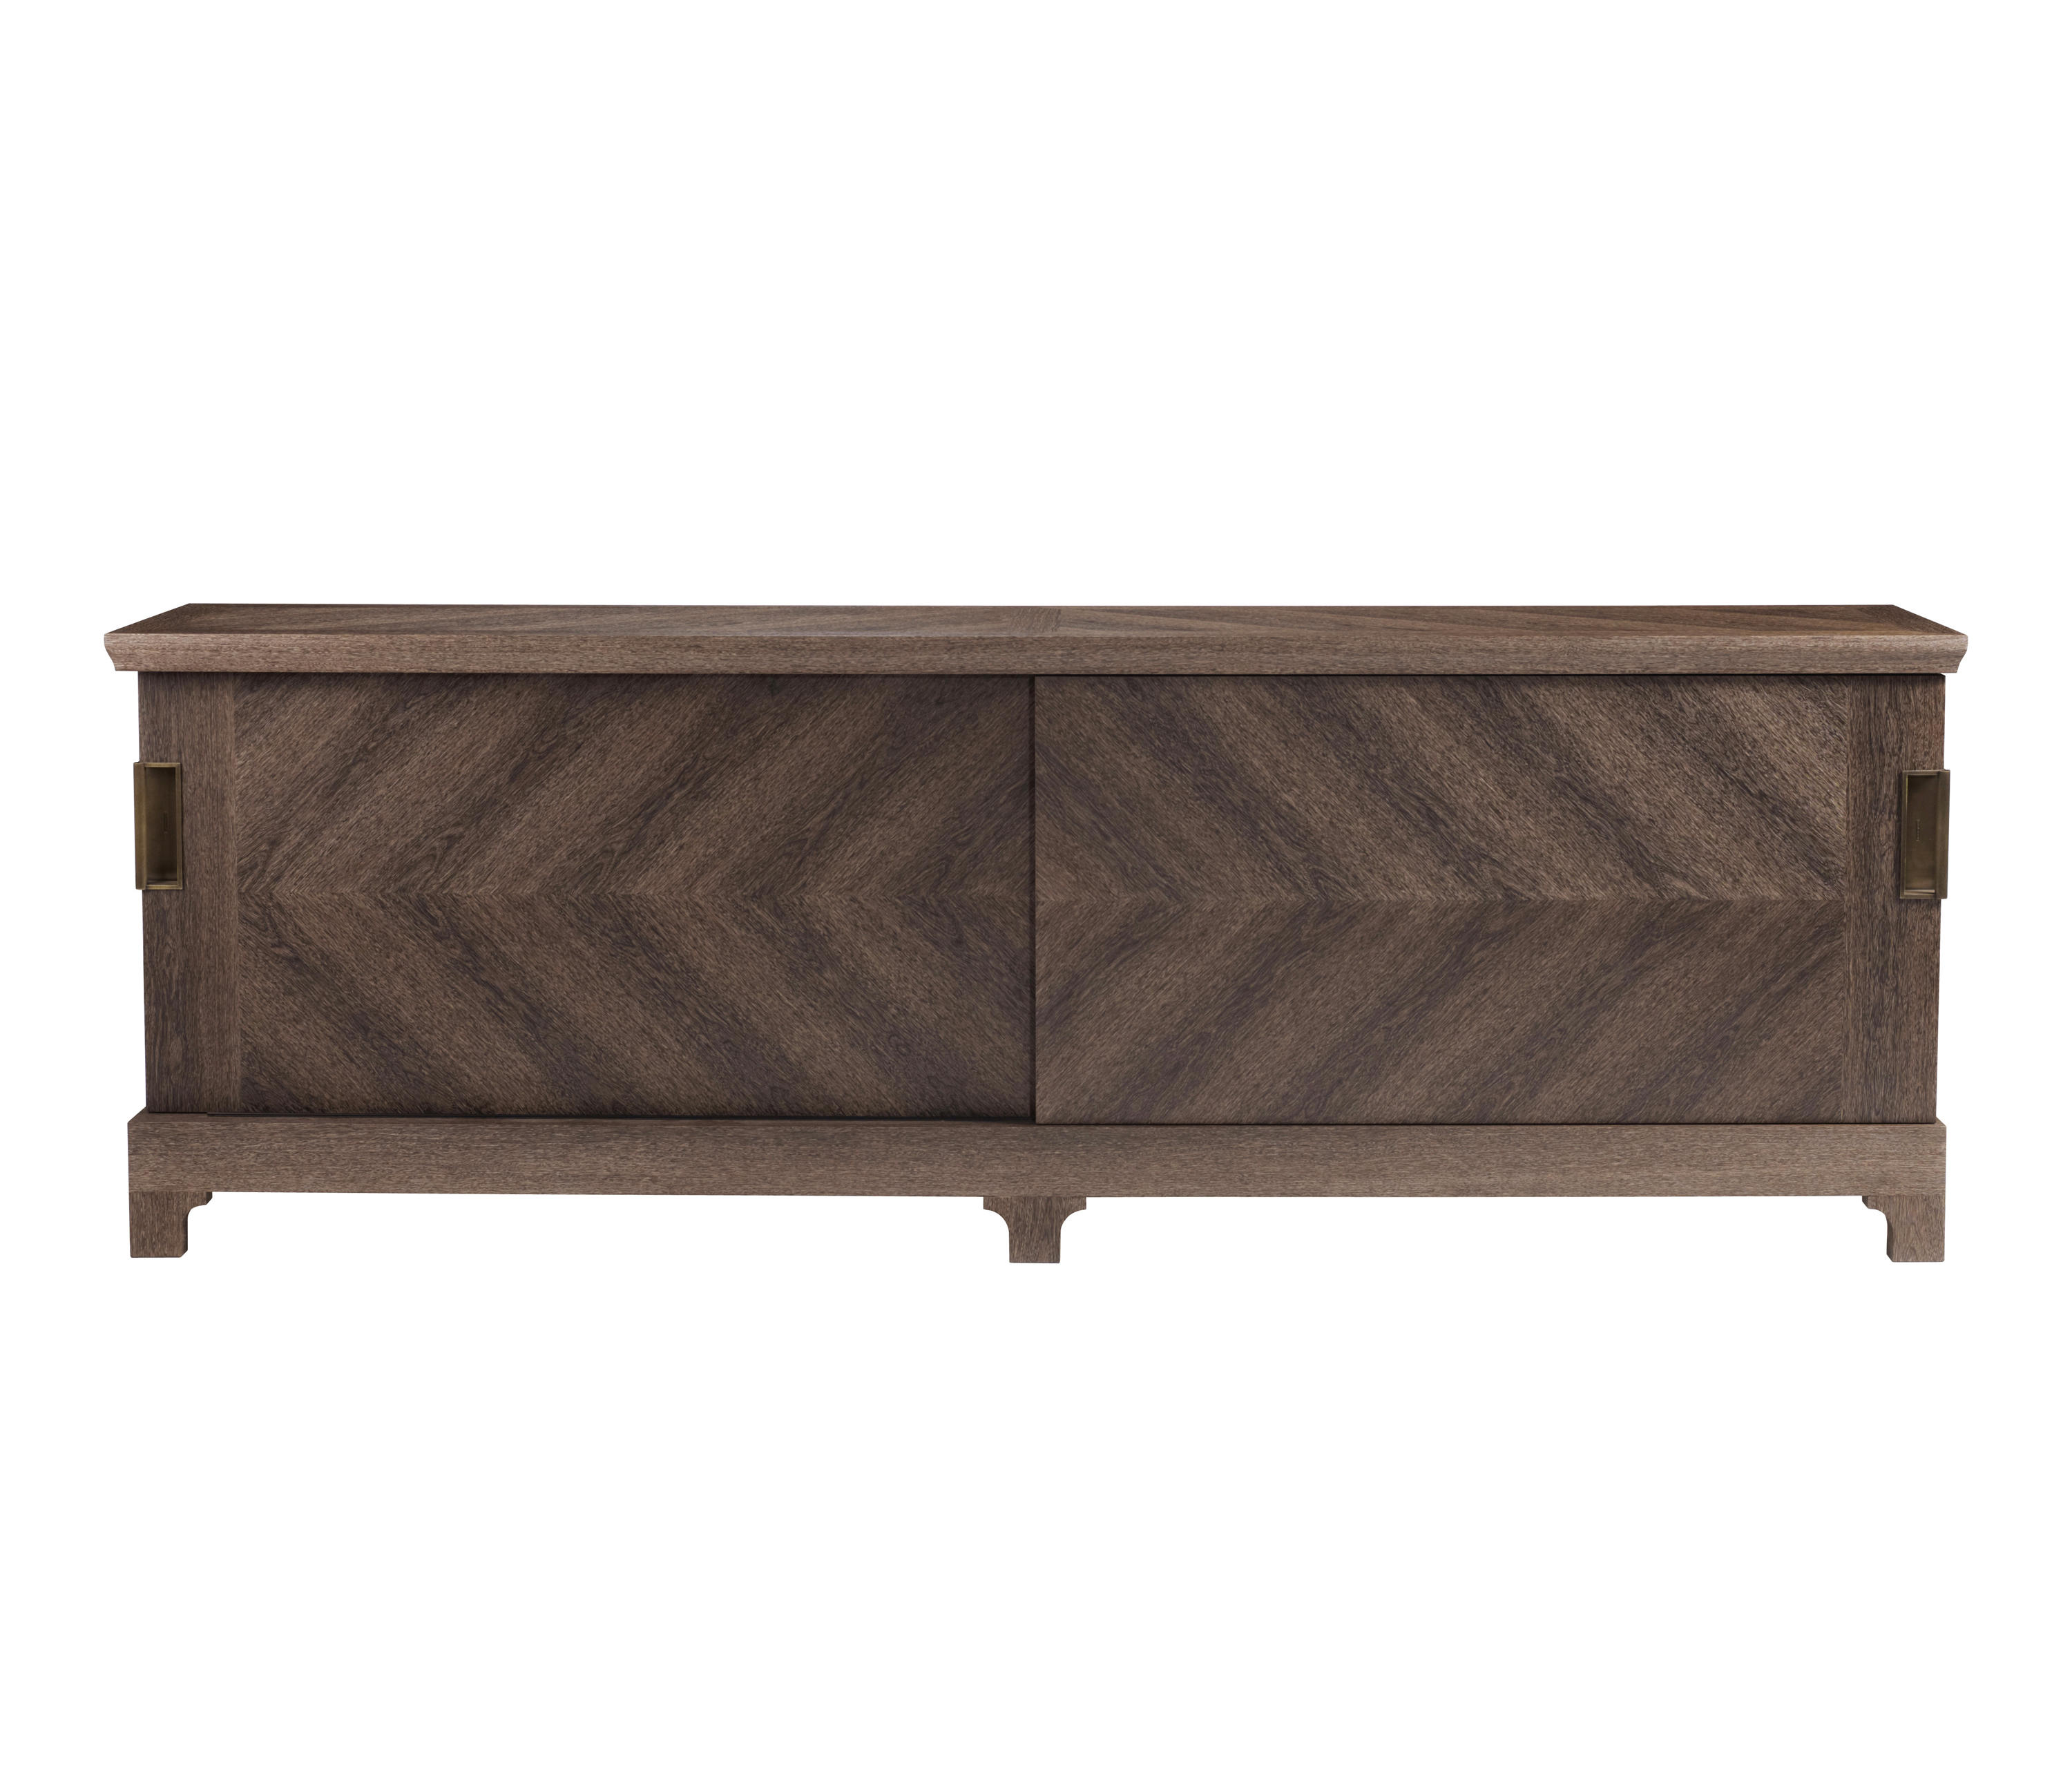 Oolong Low Cabinet Sideboards From Promemoria Architonic